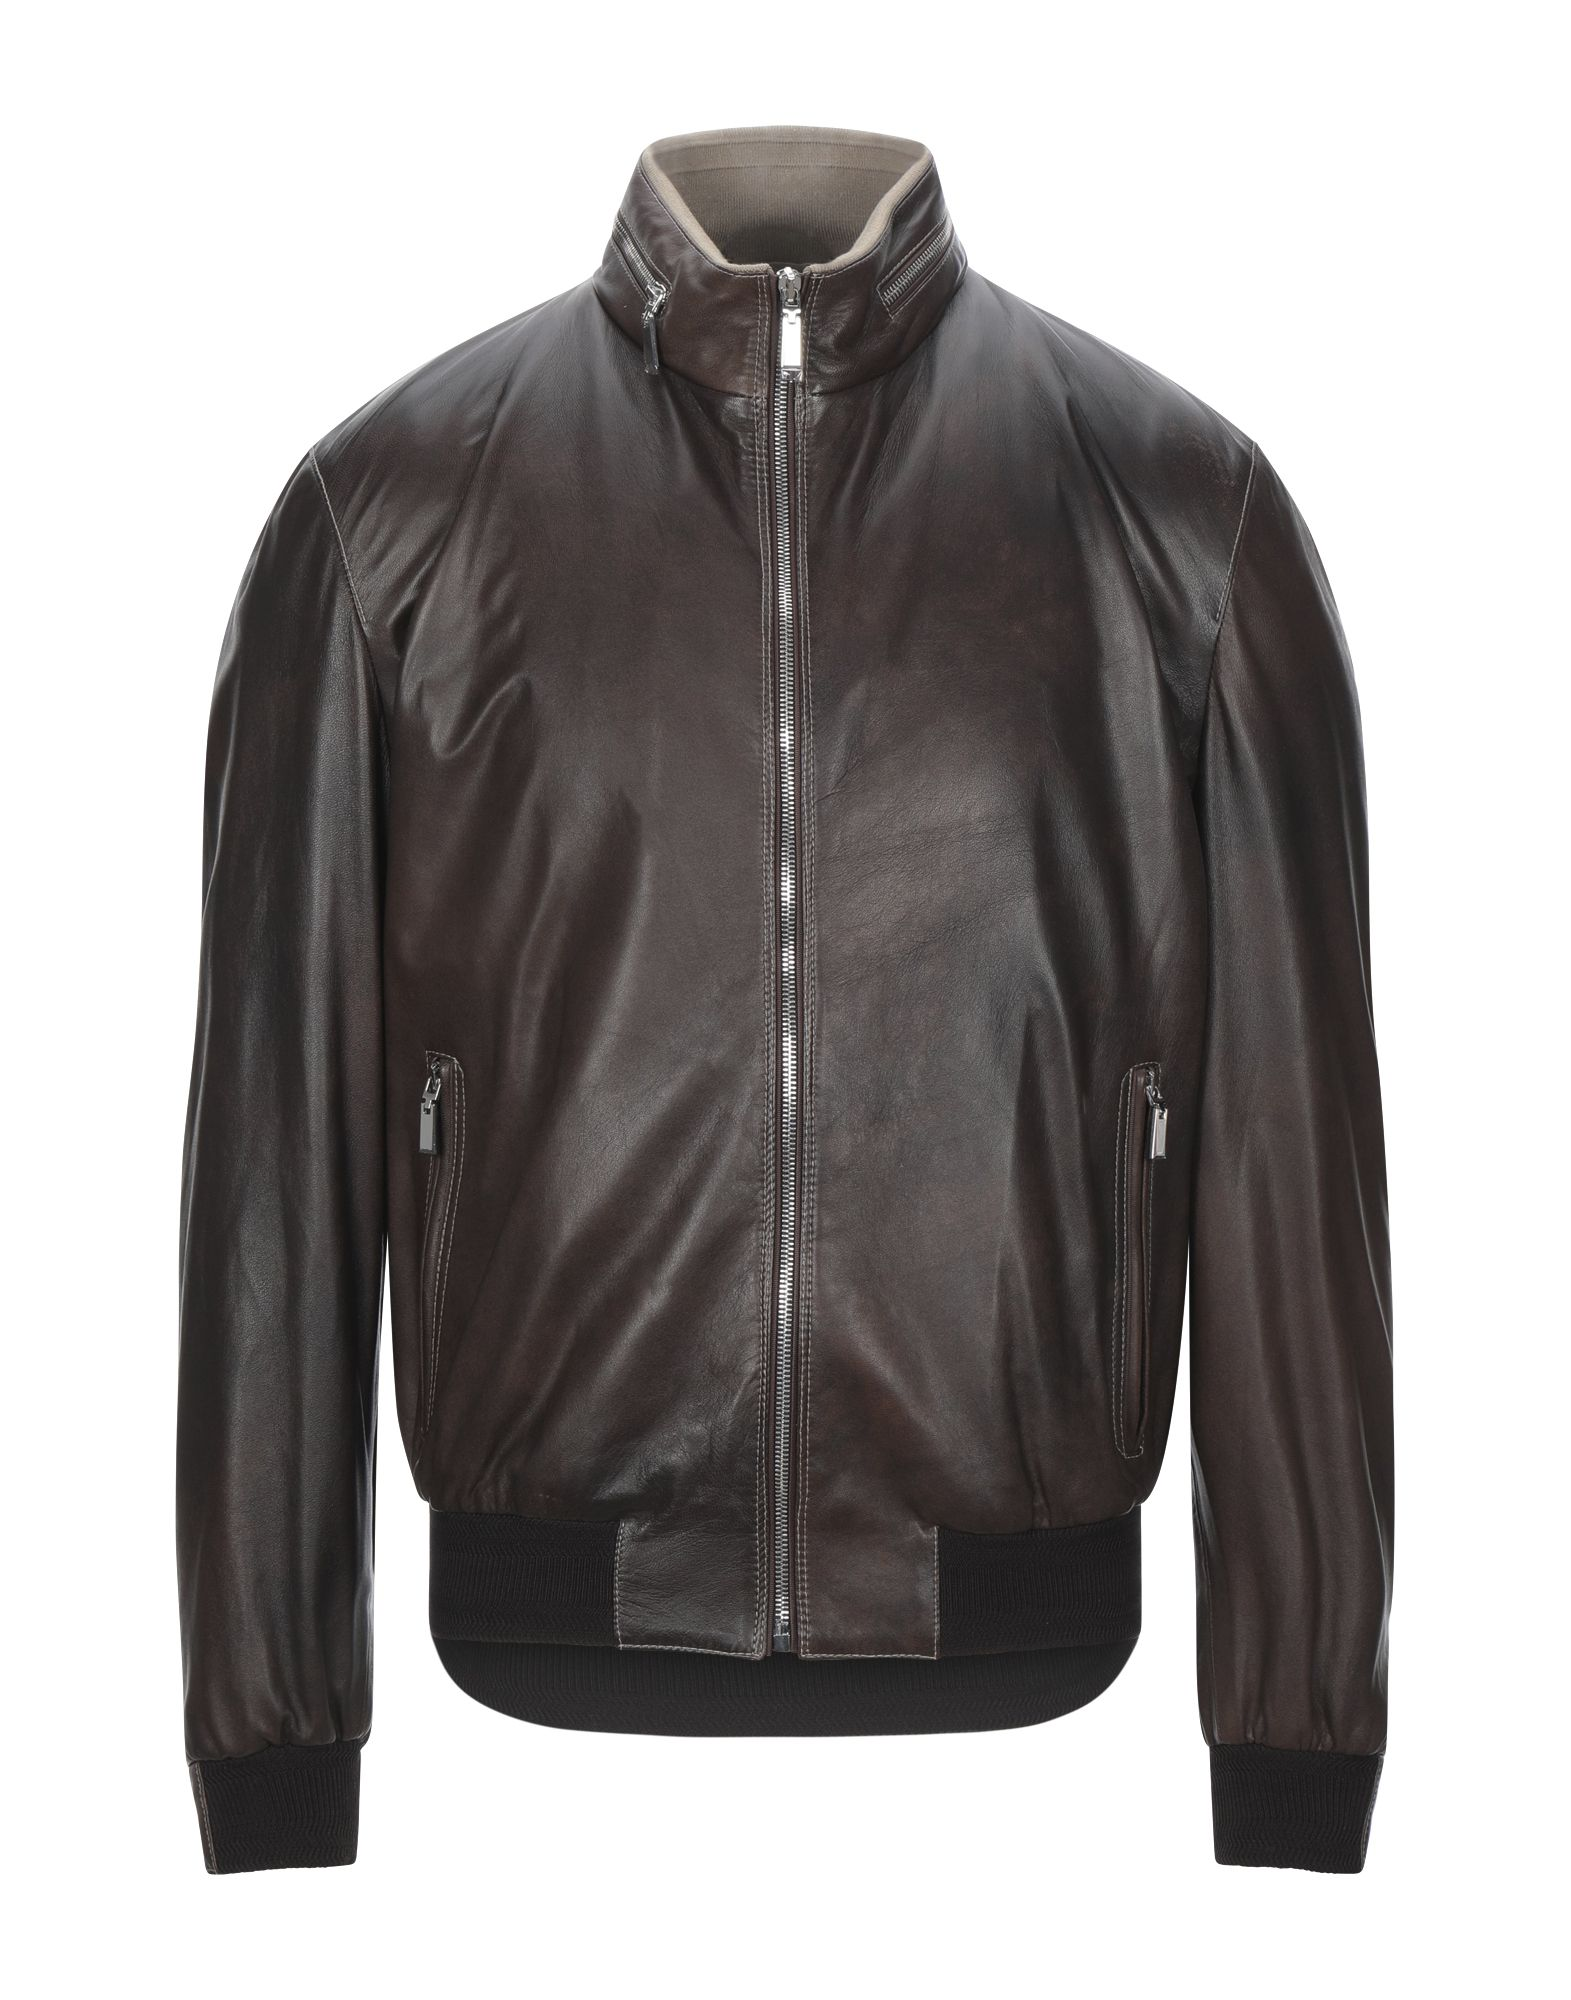 LATINI FINEST LEATHER Куртка отсутствует poetae latini minores t 6